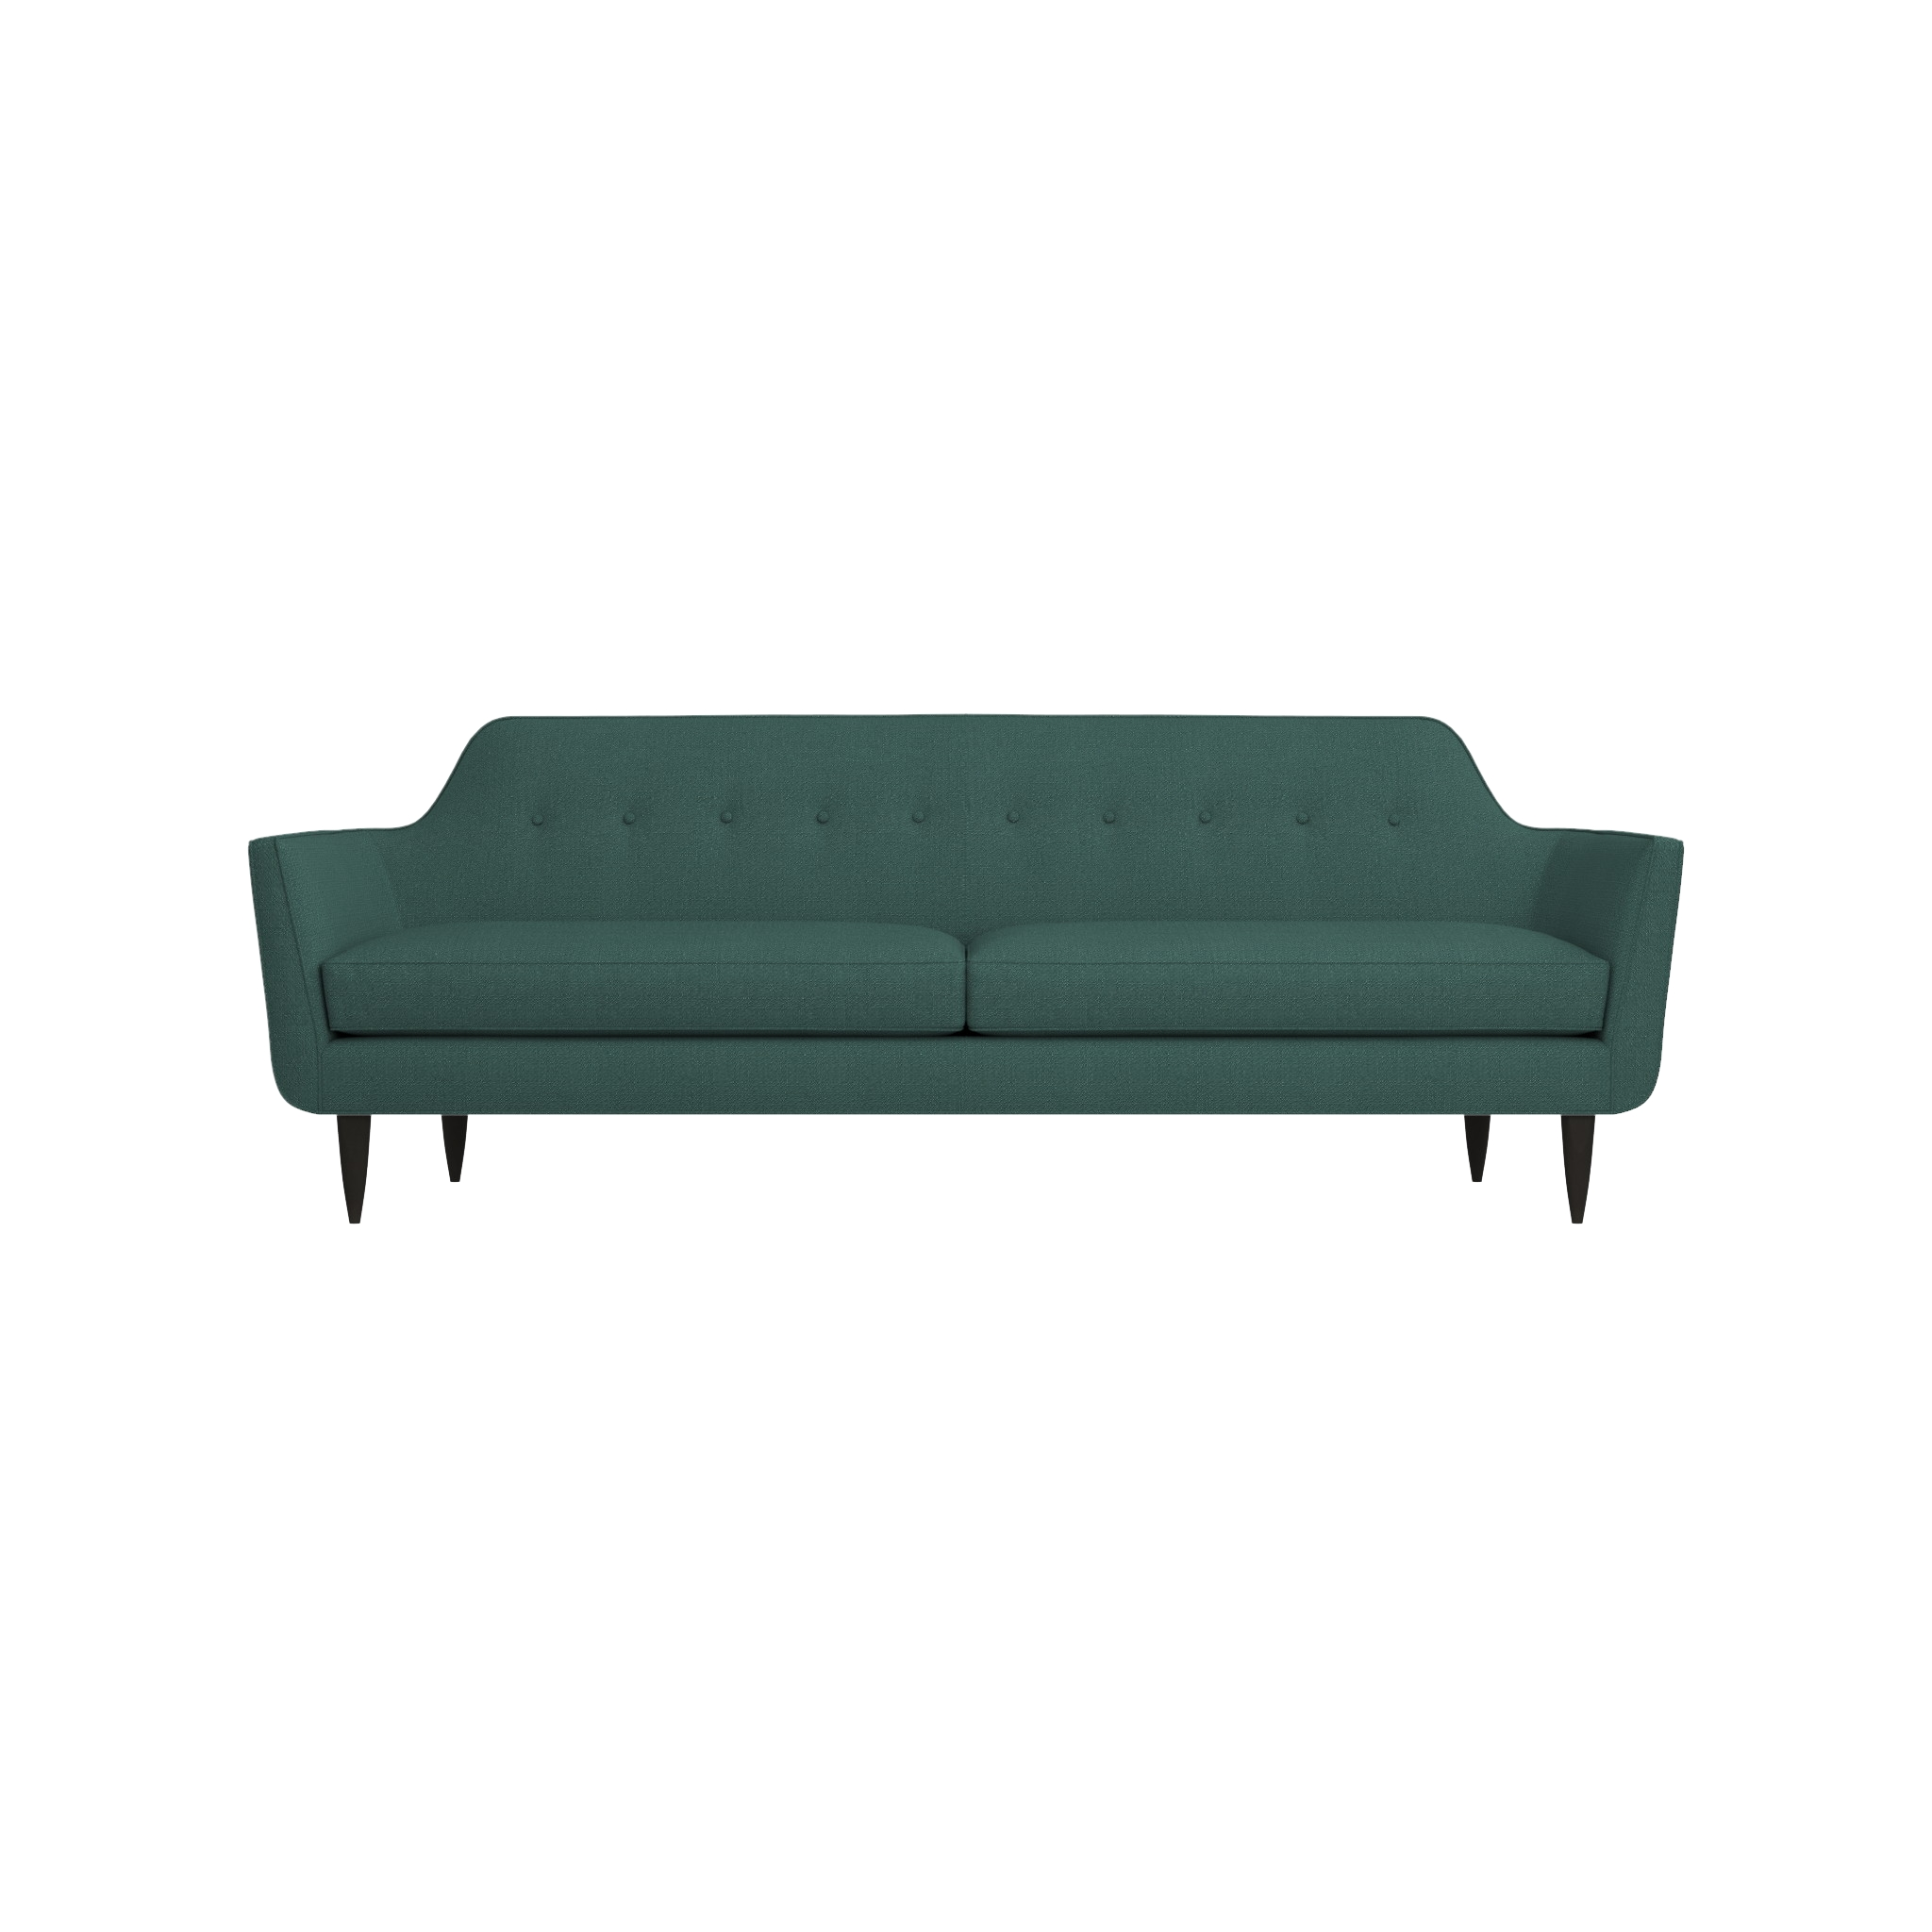 Gia Modern Blue Tufted Sofa | Crate And Barrel within Crate and Barrel Futon Sofas